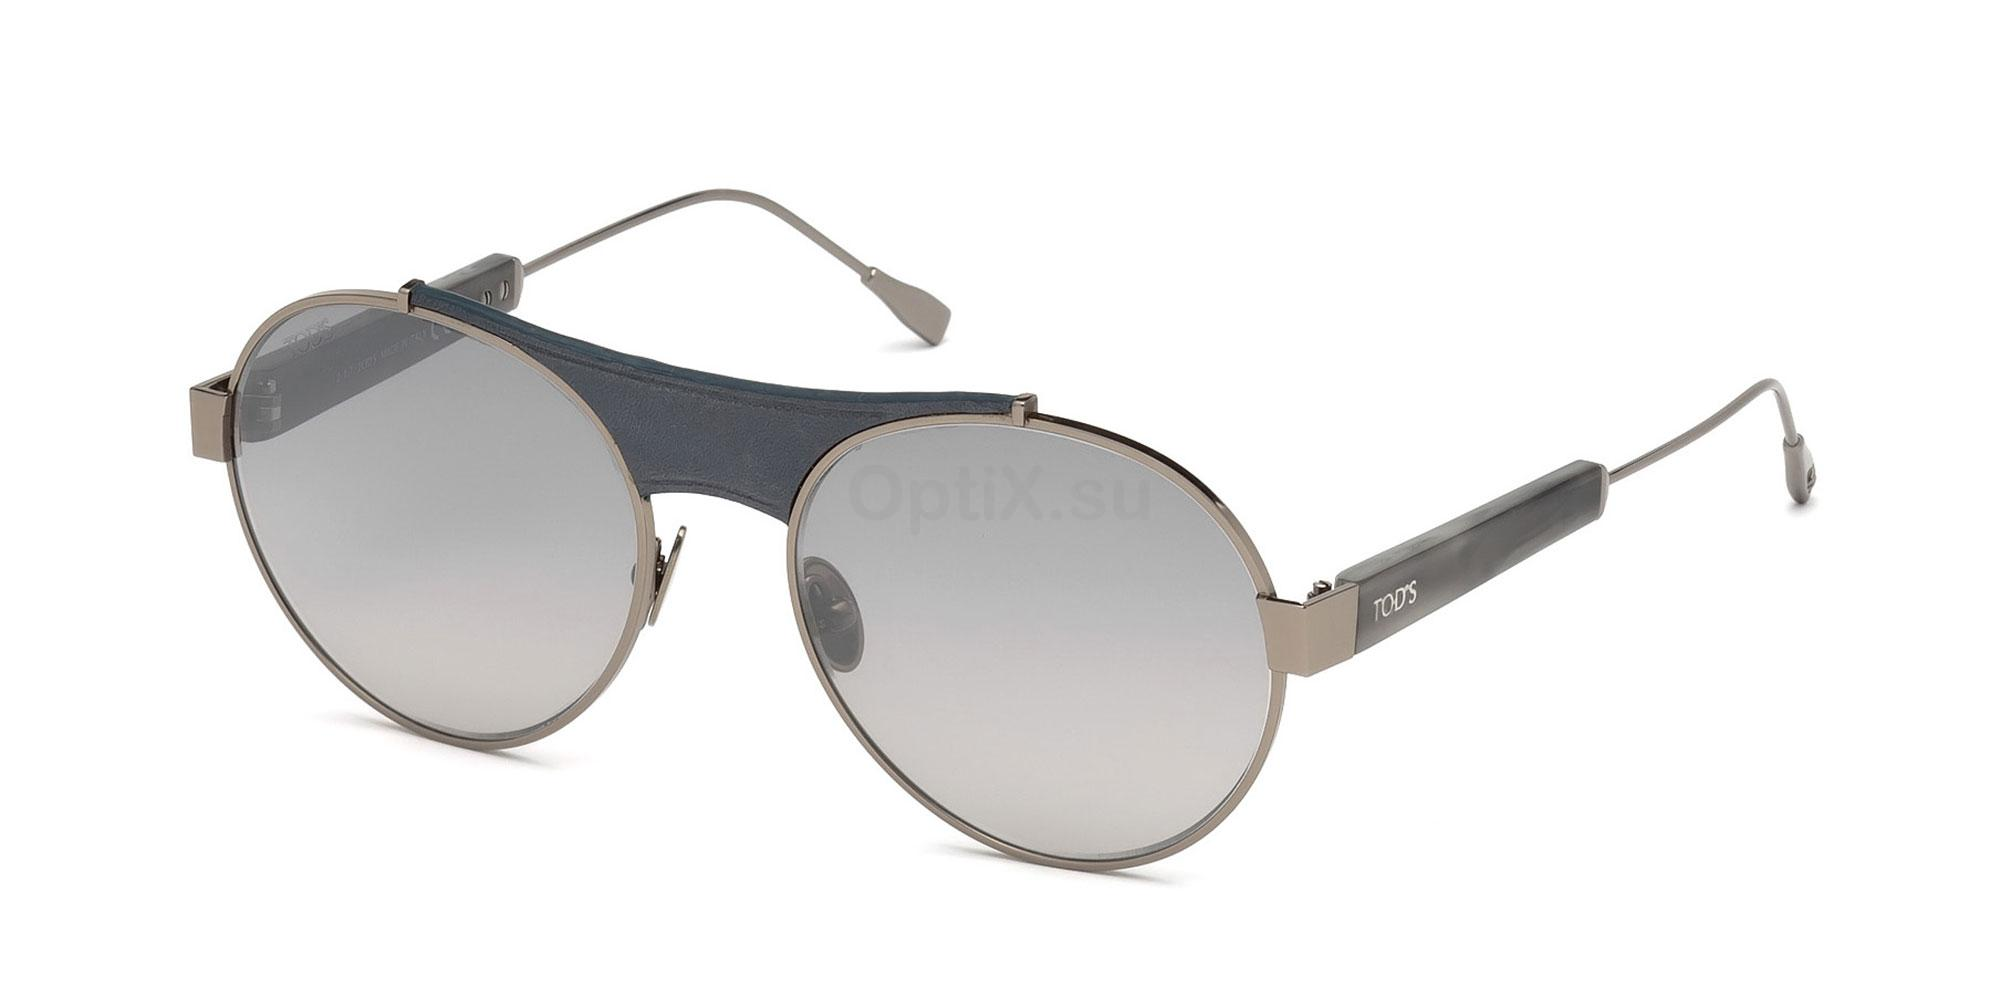 14C TO0216 Sunglasses, TODS